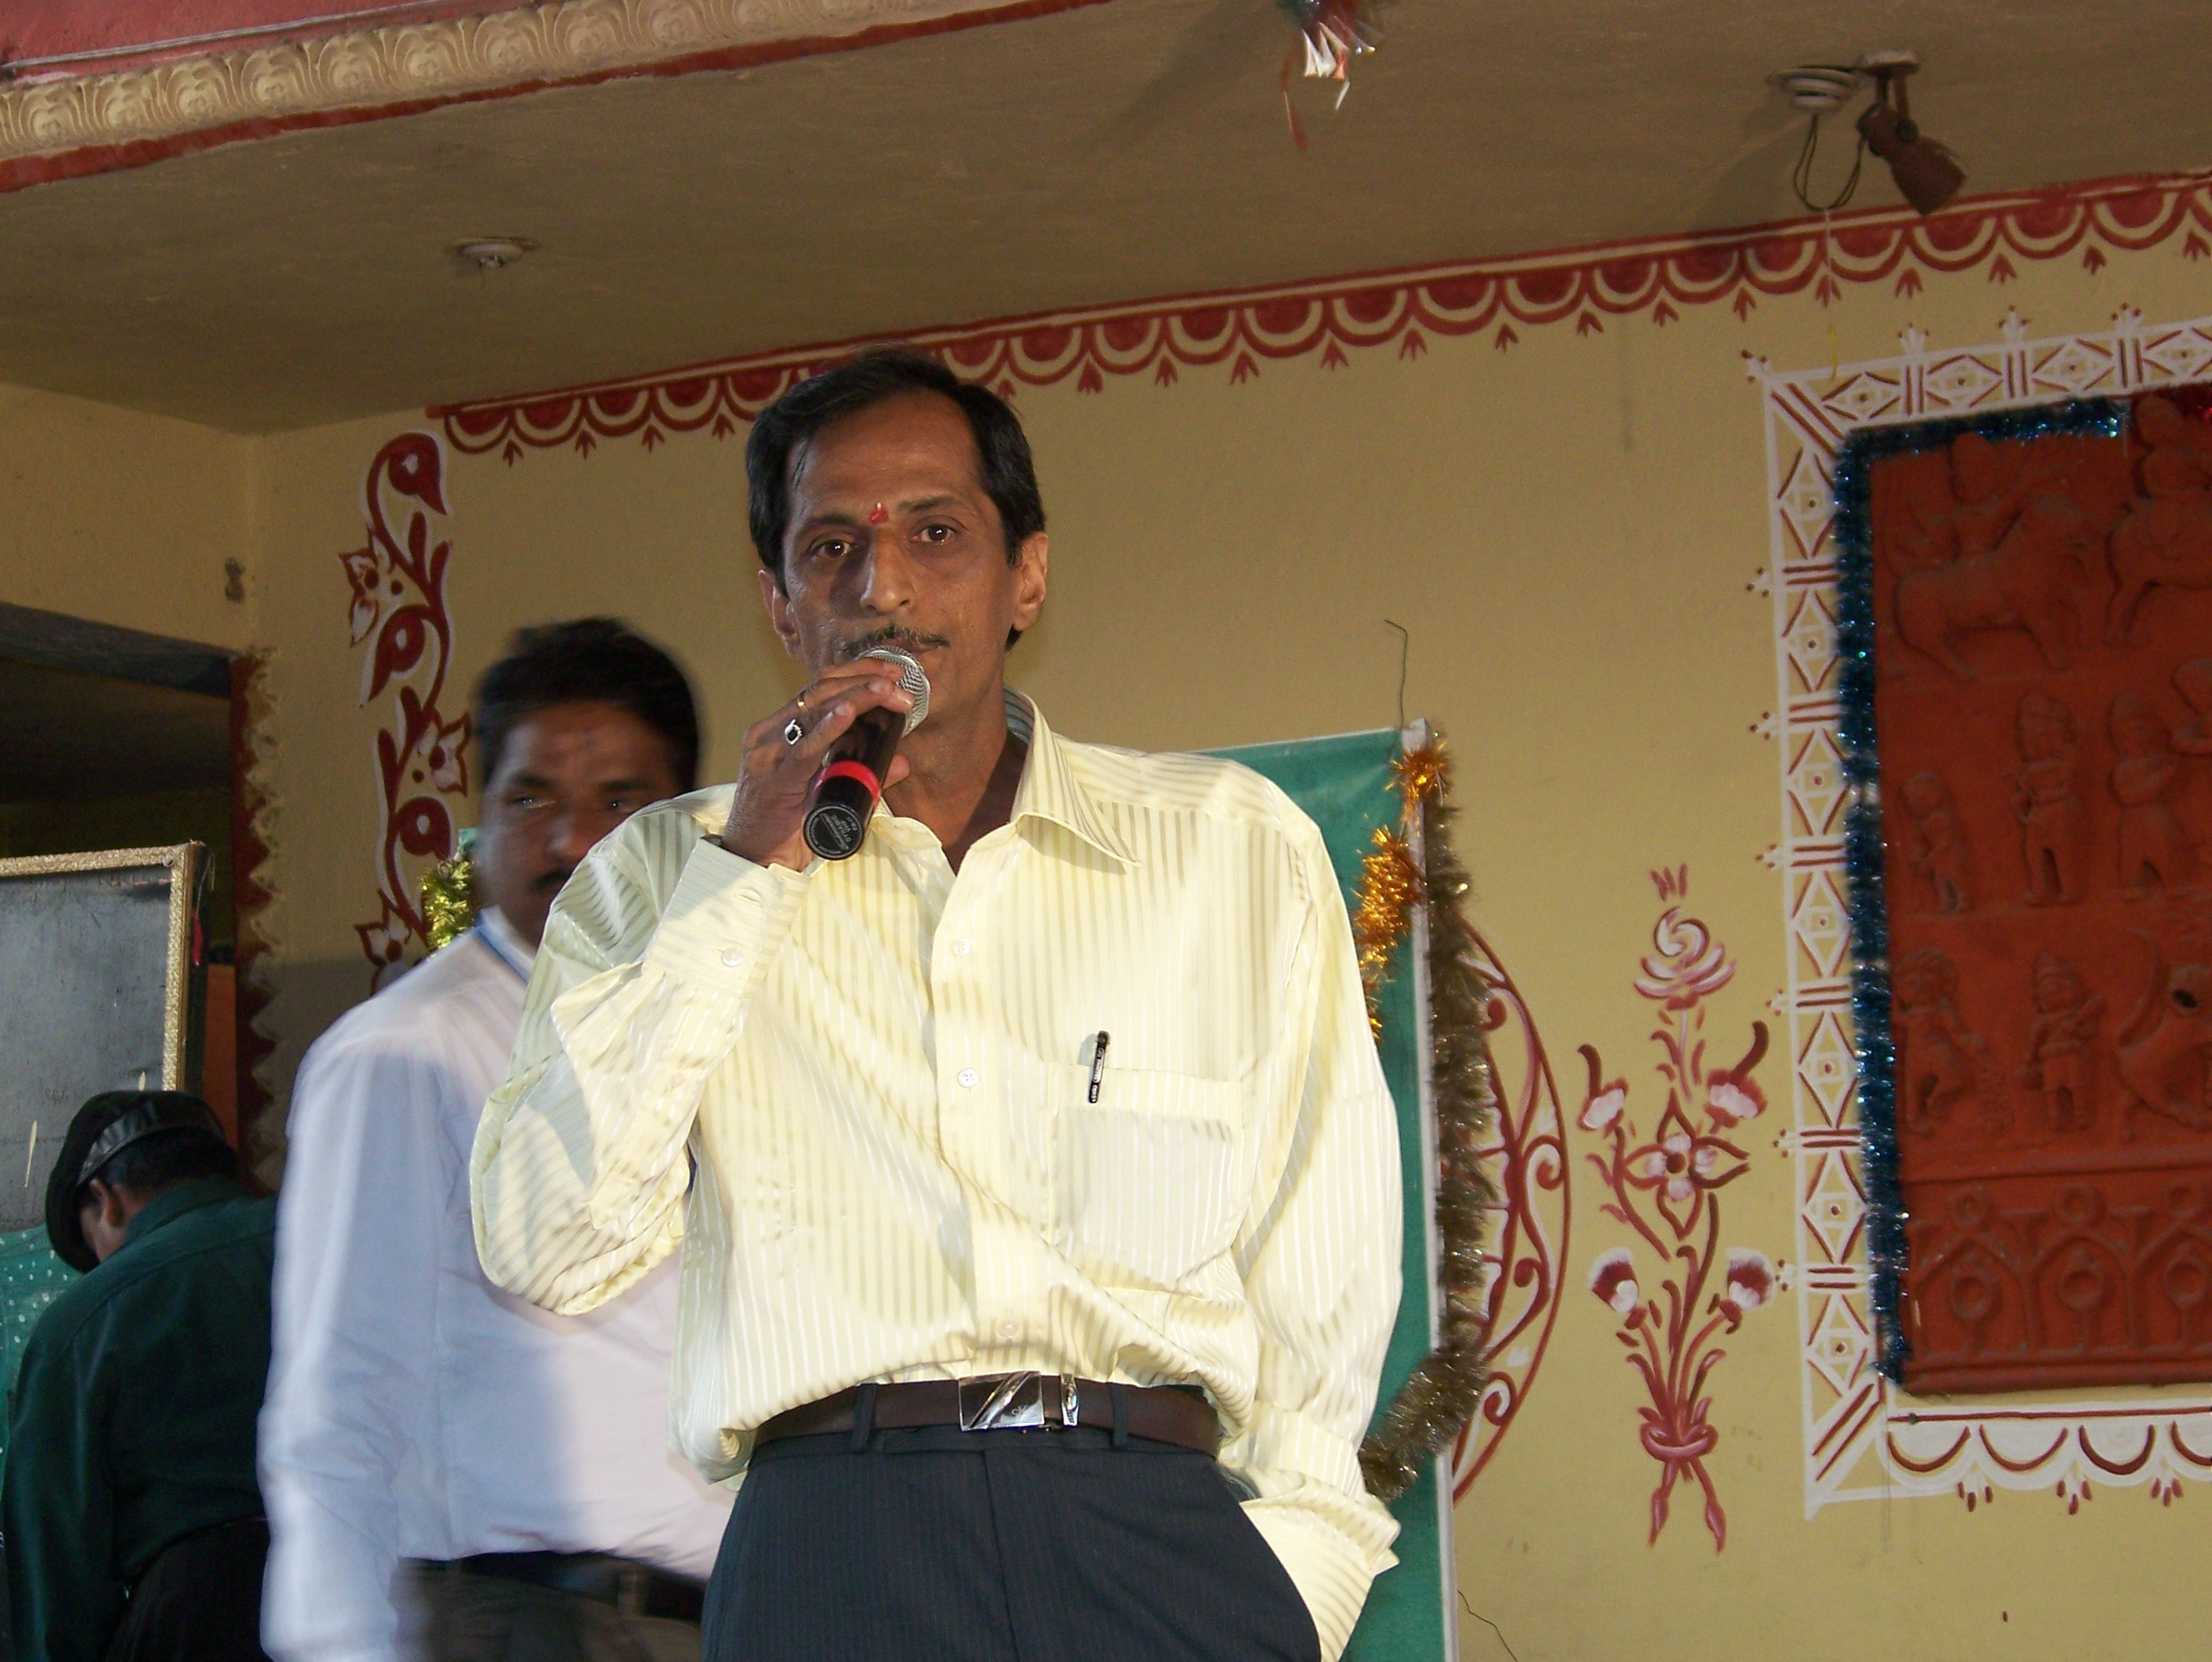 A S Murty at PADHARO SE musical show on 25th December 2008